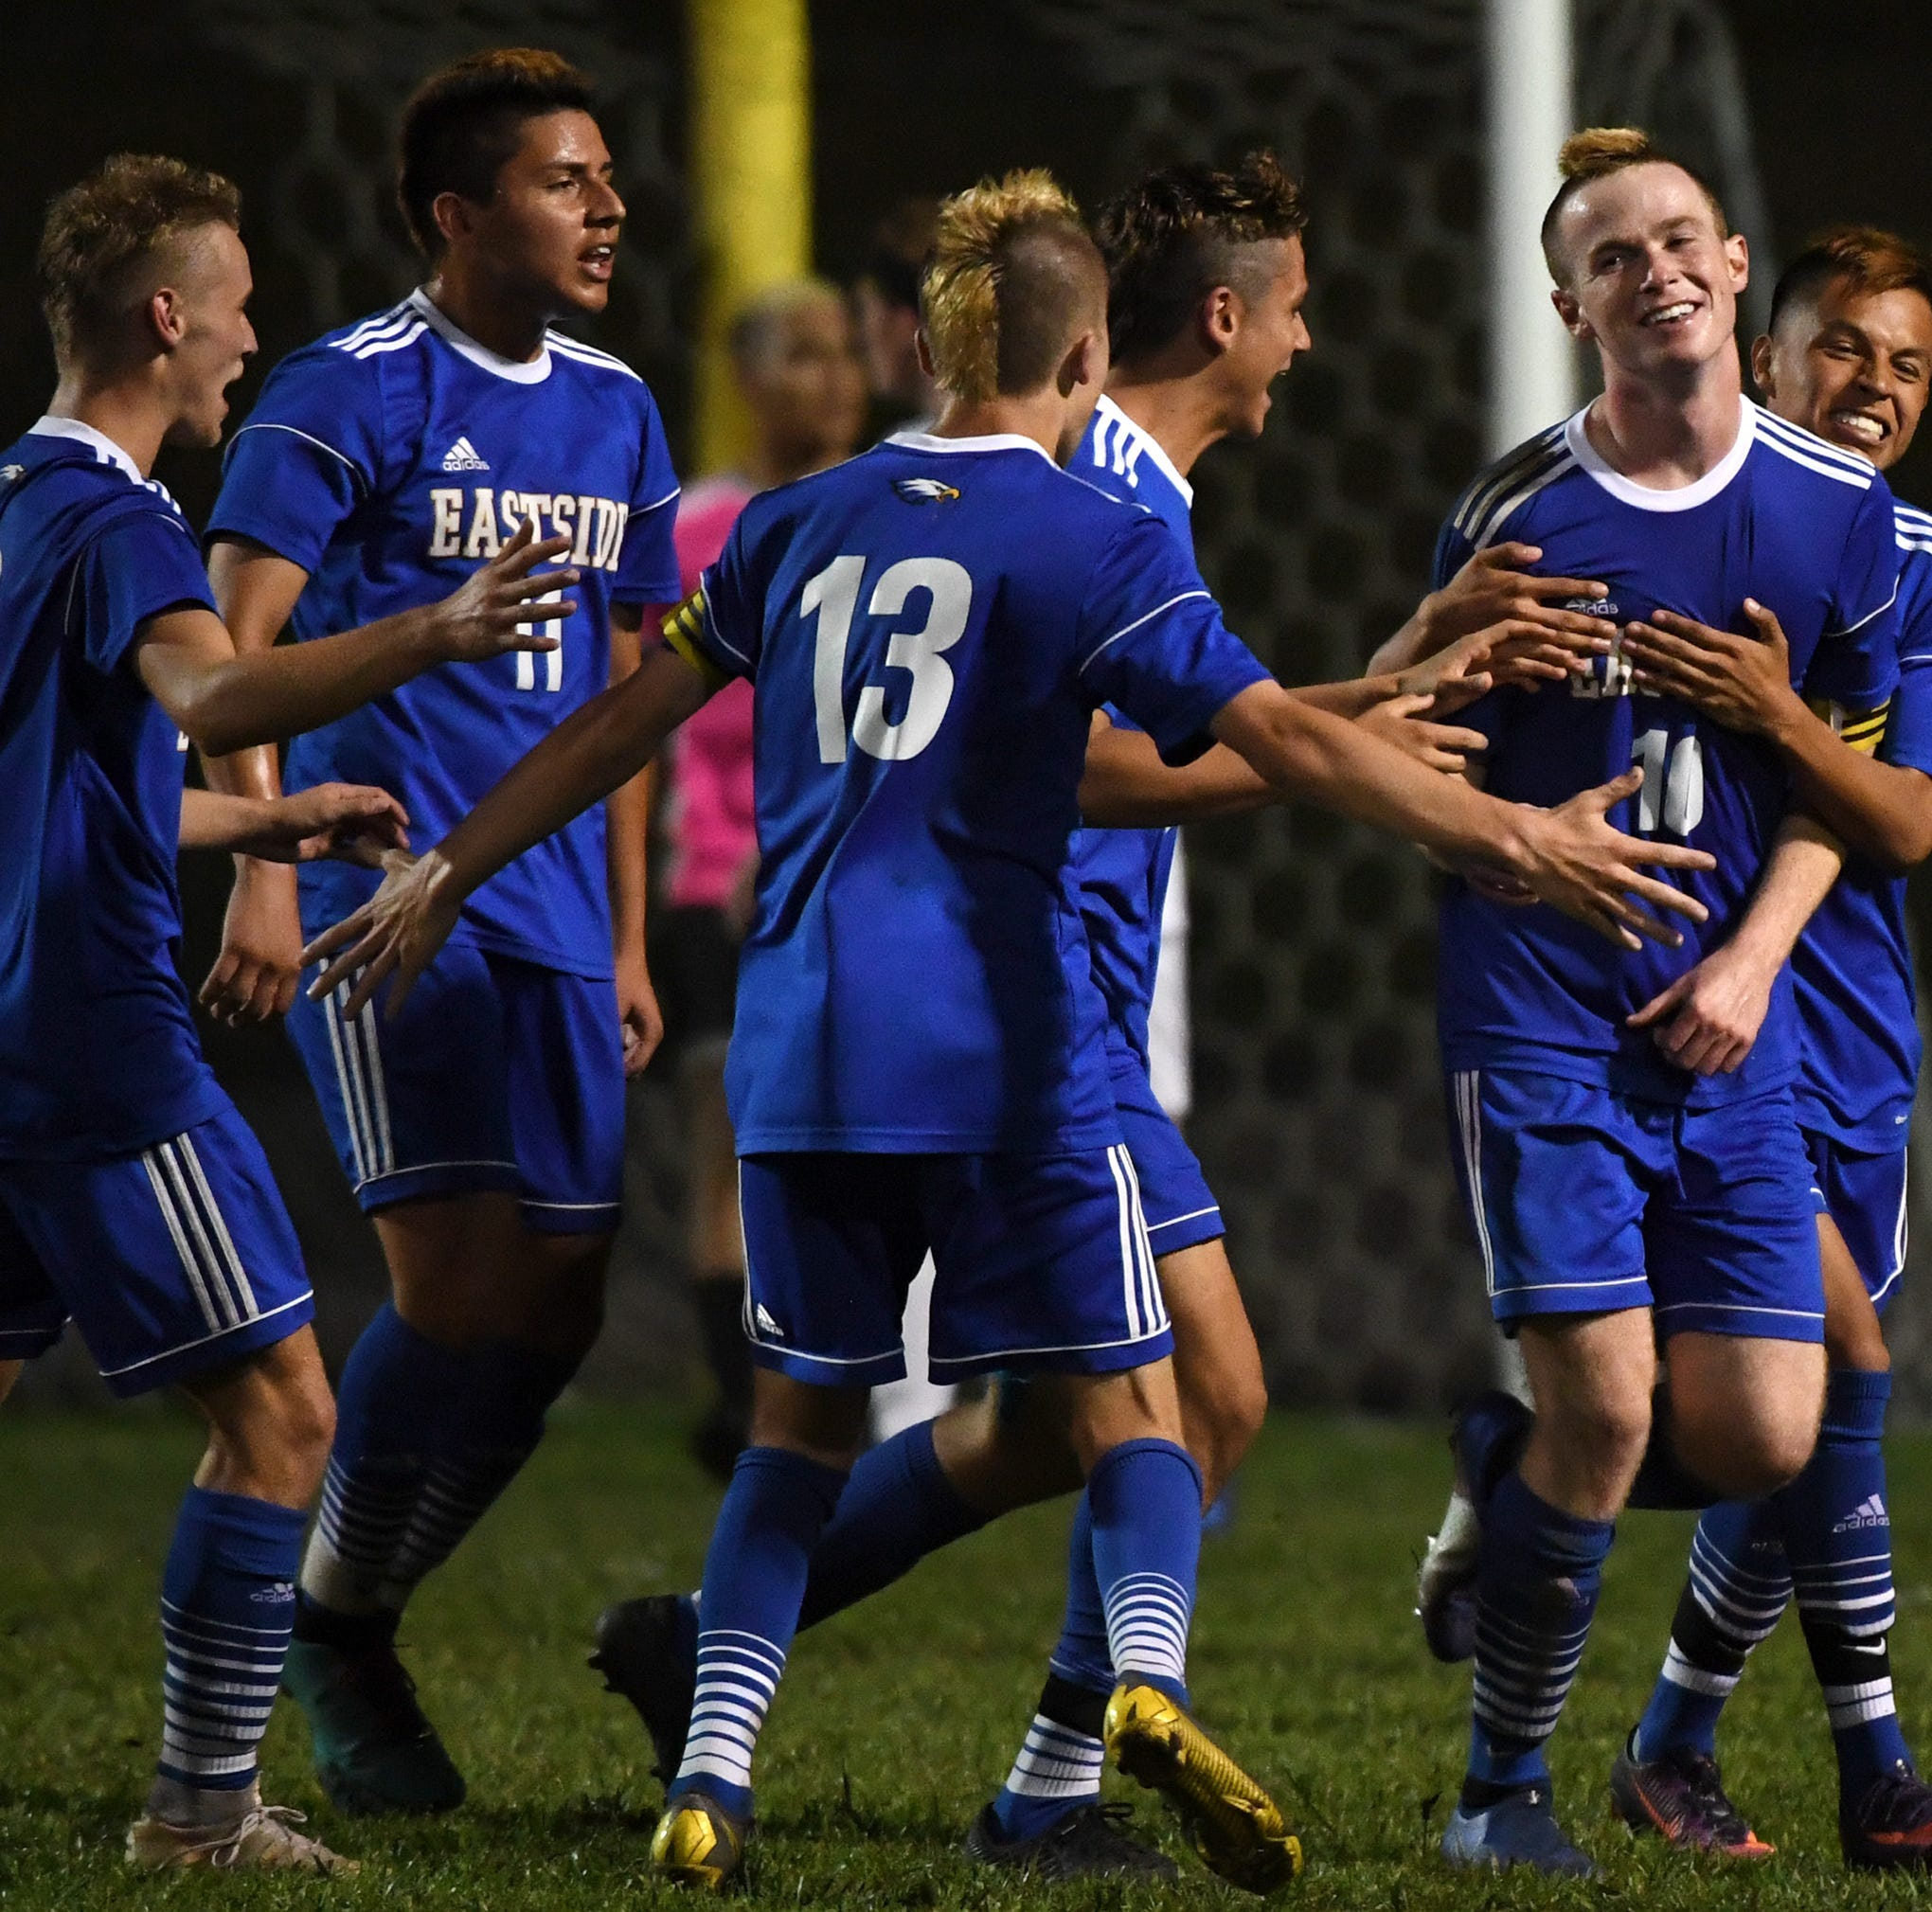 The Eastside High School soccer team celebrate Will Brandenburg's (10) goal in overtime during the game against Wren High School at Eastside High School Tuesday, May 7, 2019.